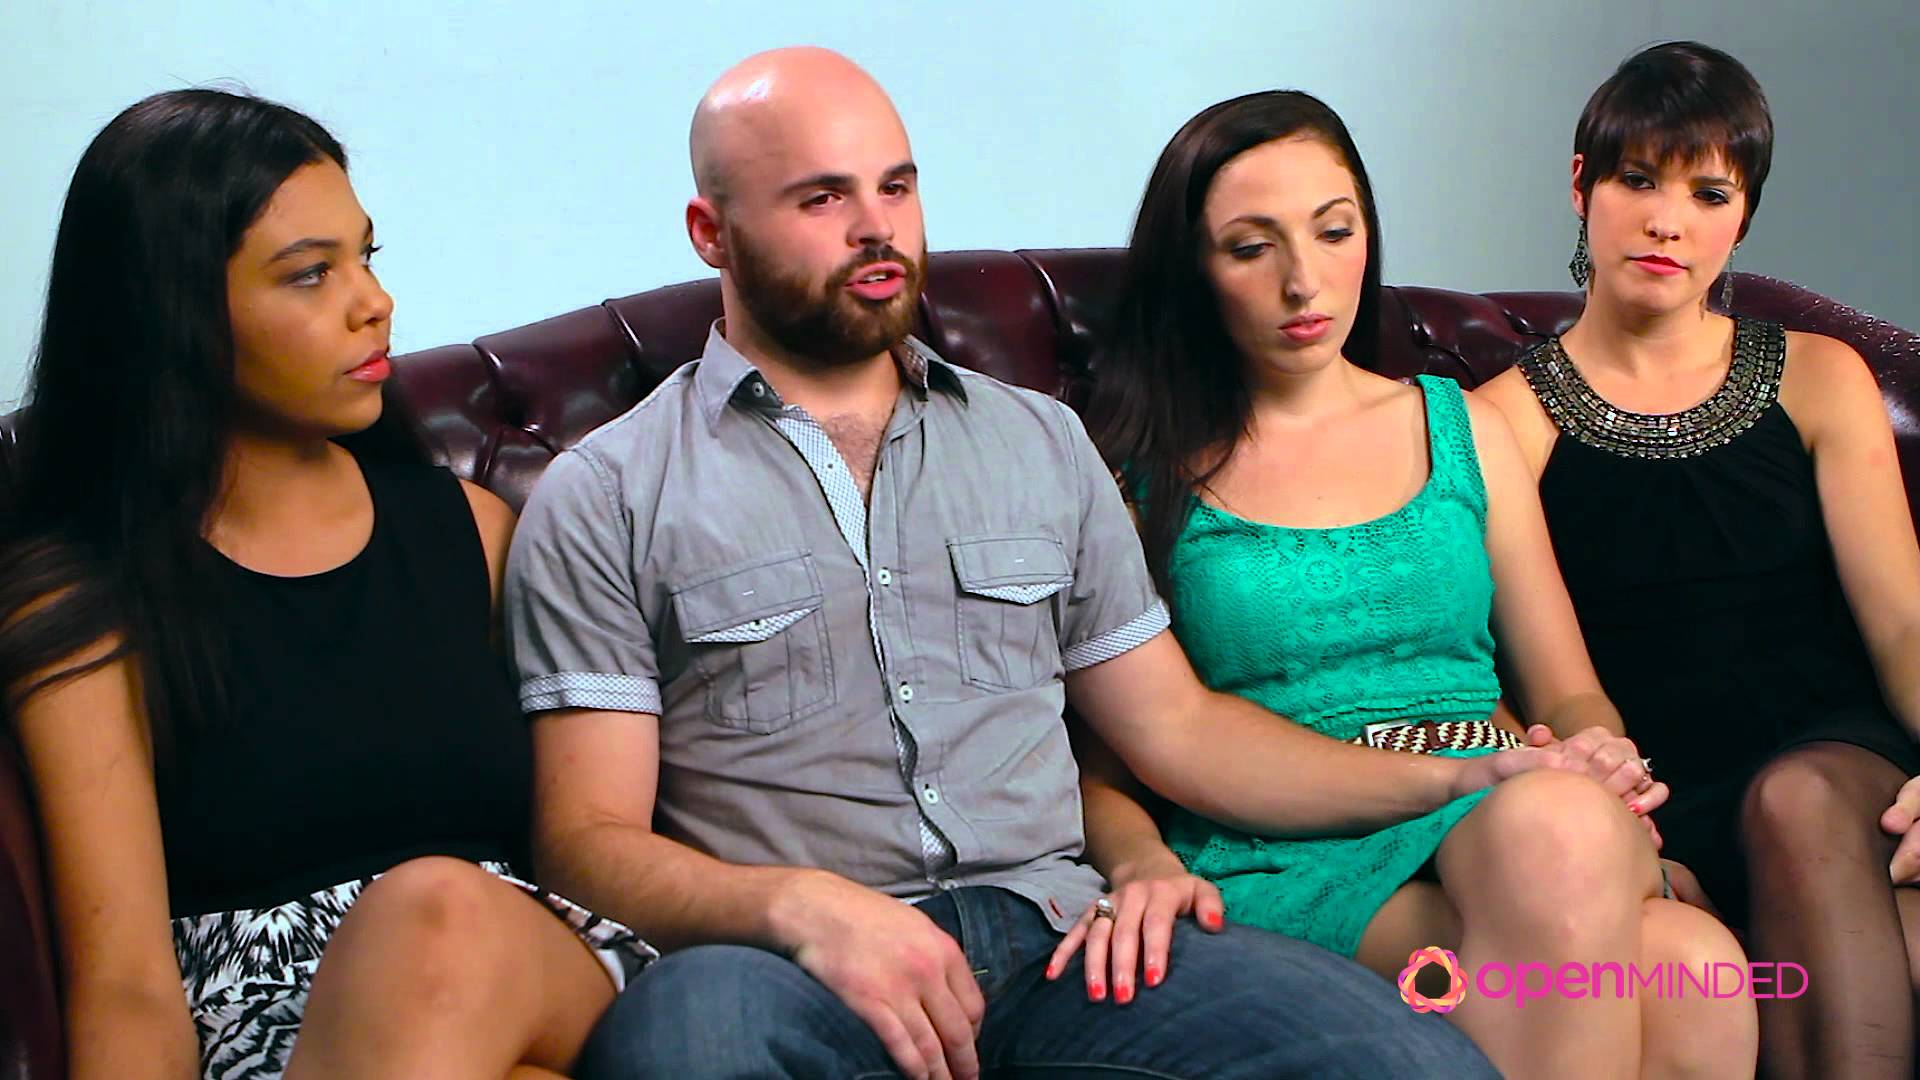 Watch: Huffington Post Advocates Polygamous Relationships; The New Perversion